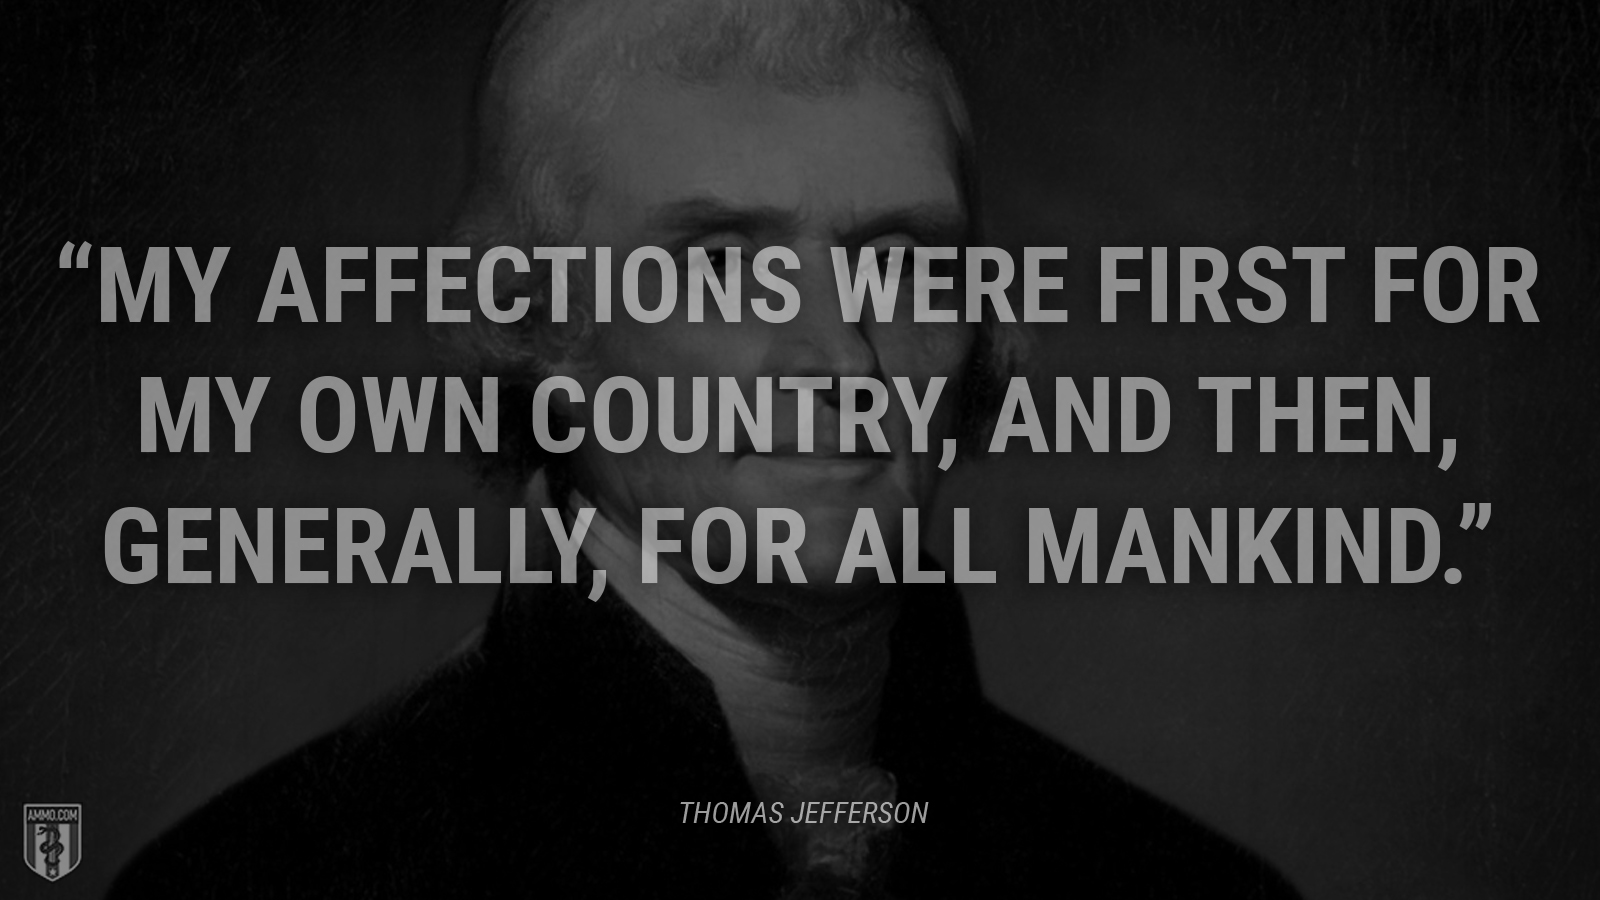 """My affections were first for my own country, and then, generally, for all mankind."" - Thomas Jefferson"